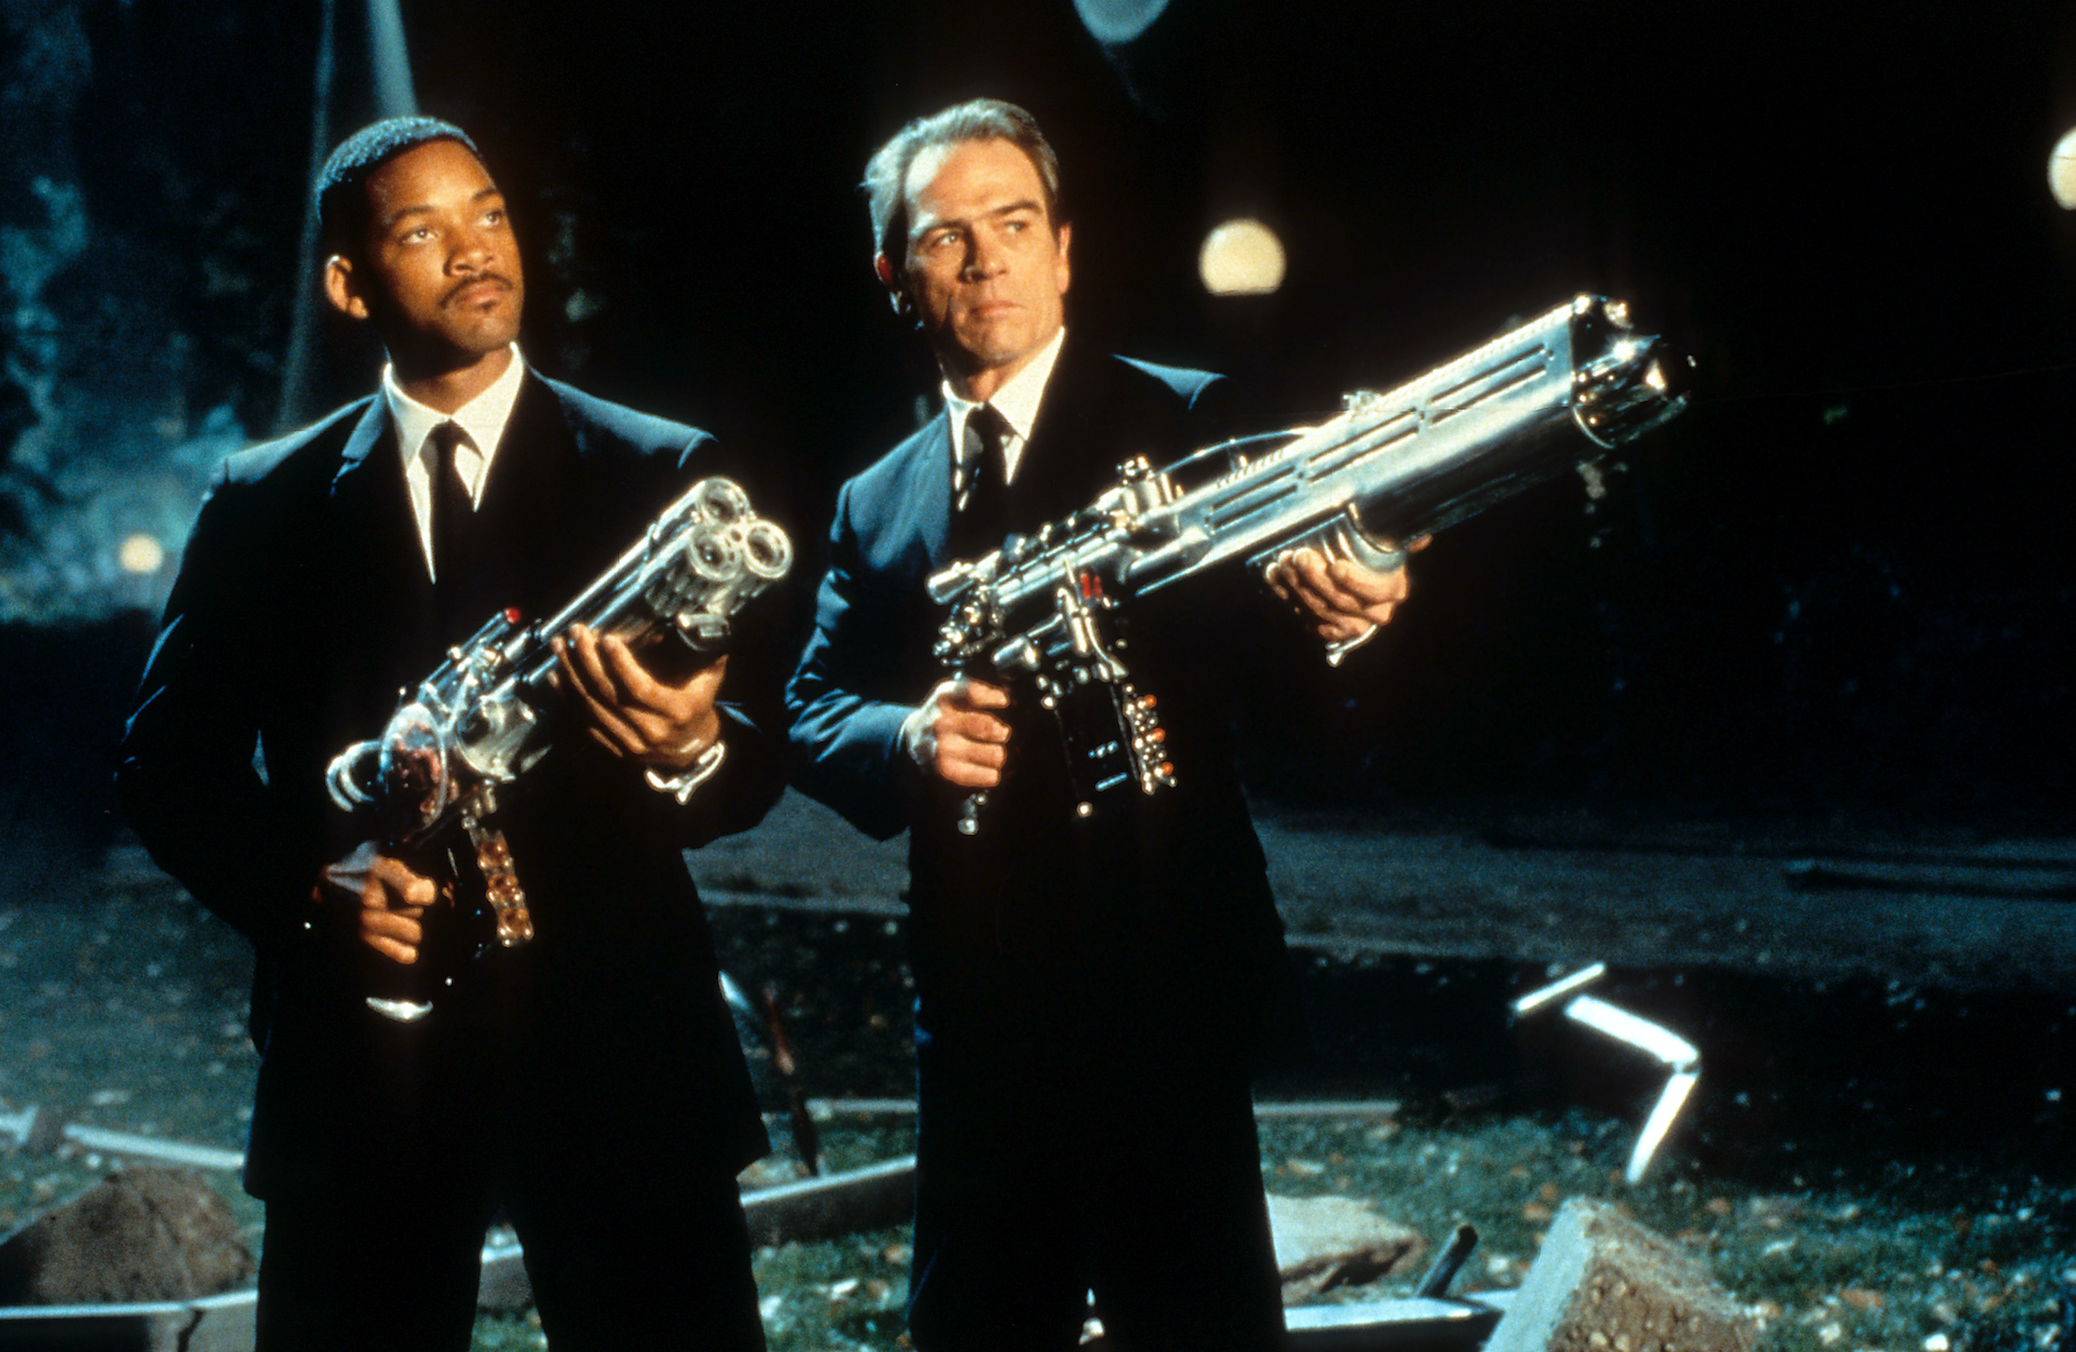 Why Men In Black 4 Never Happened With Will Smith And Tommy